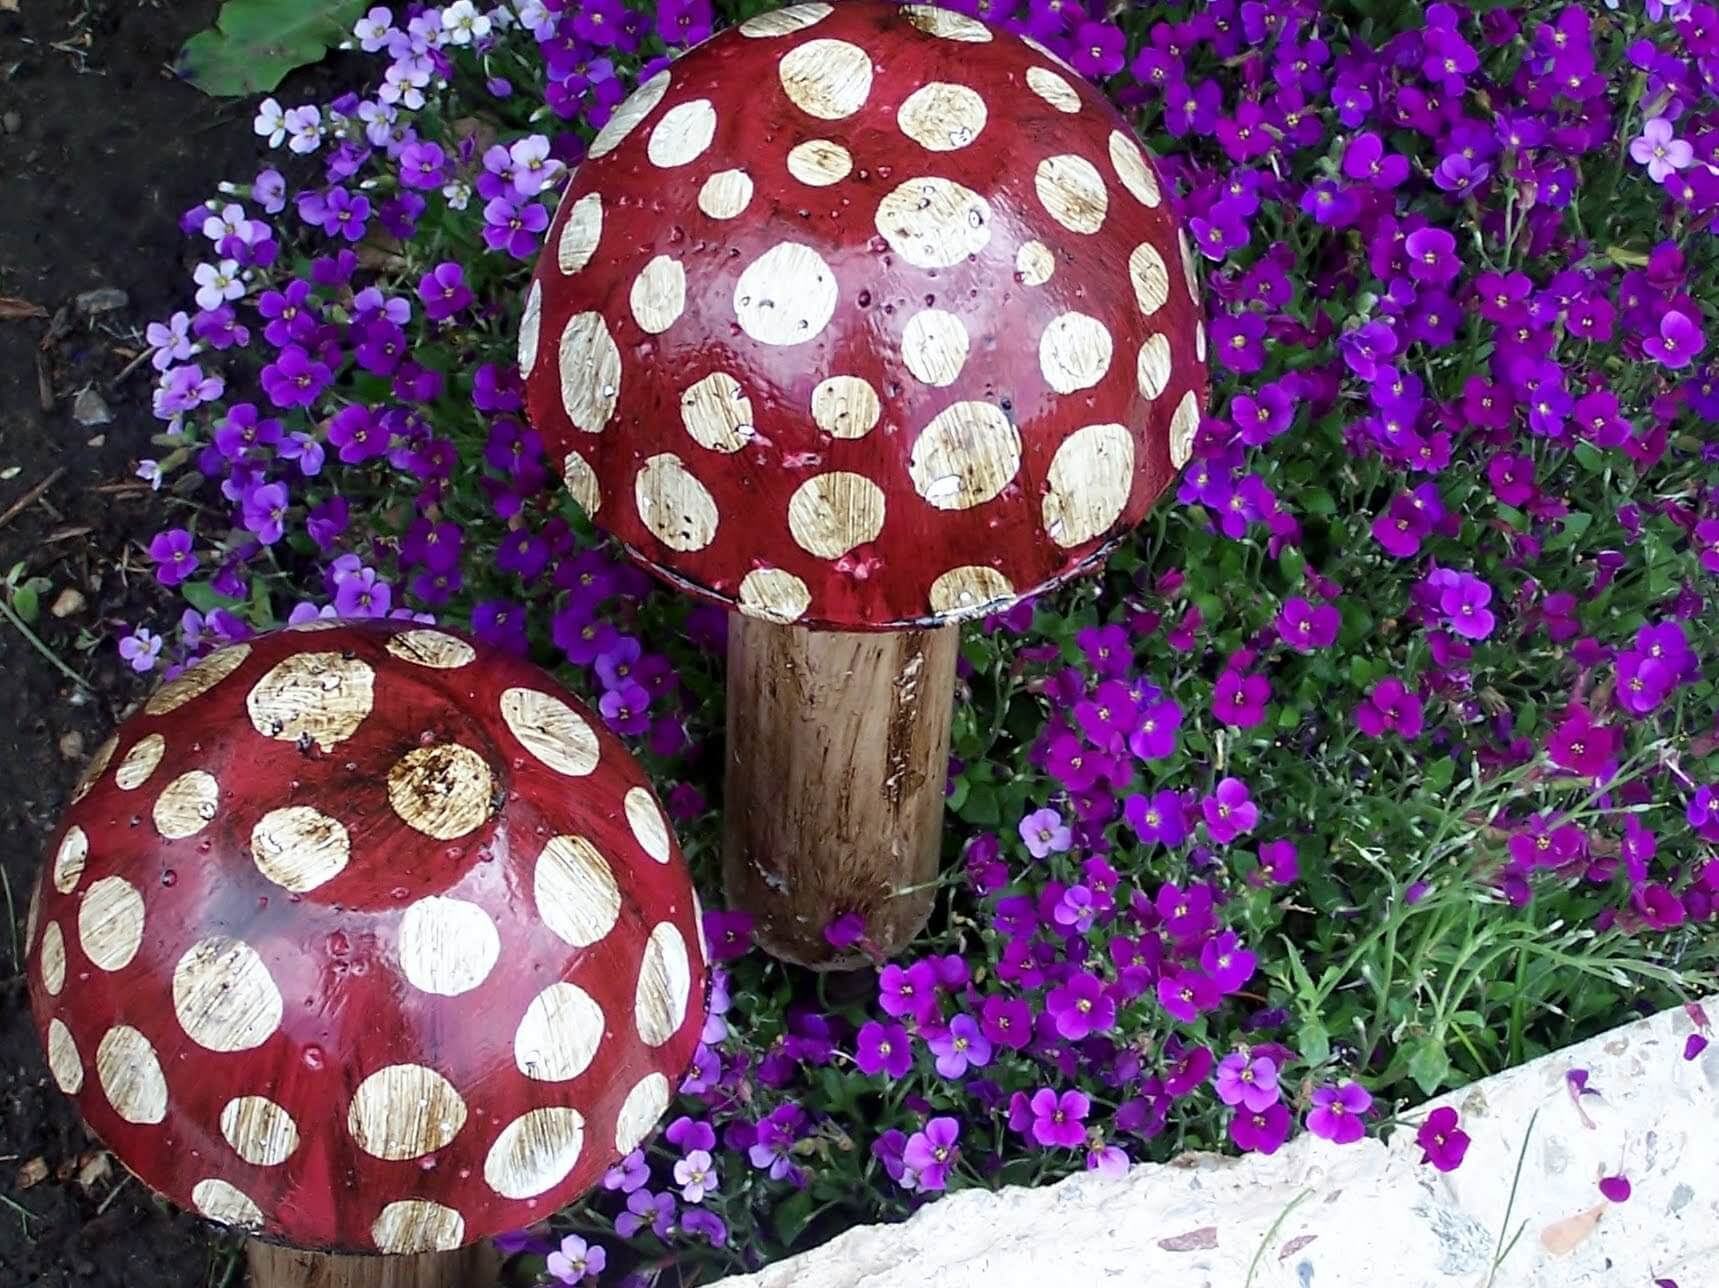 Polka Dot Mushrooms Amongst the Flowers